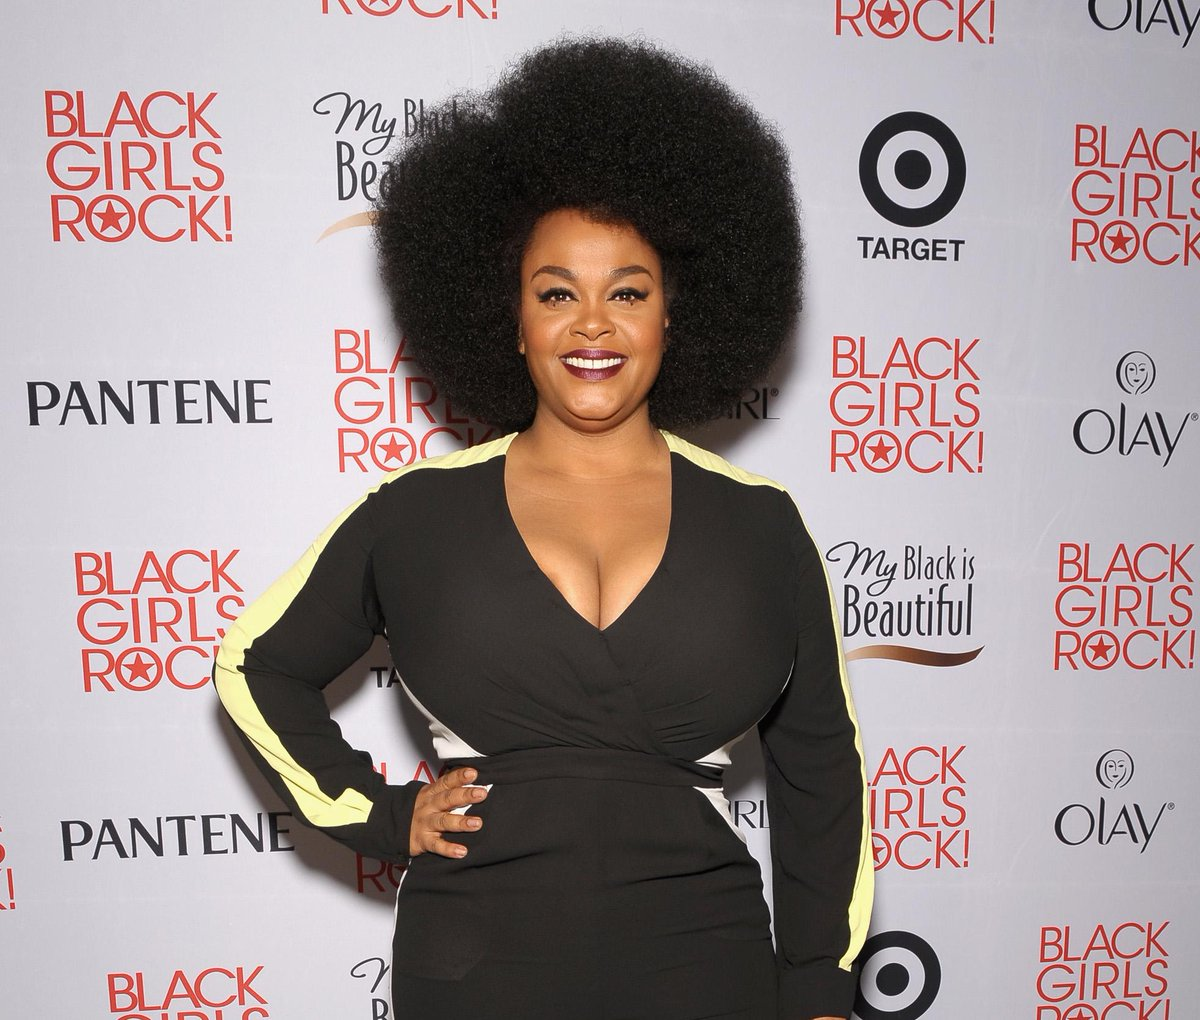 Remember to join #MBIB as we live-tweet the #BlackGirlsRock #ImagineAFuture celebration TONIGHT at 7p EST on @BET ! http://t.co/gvbxcfv31G